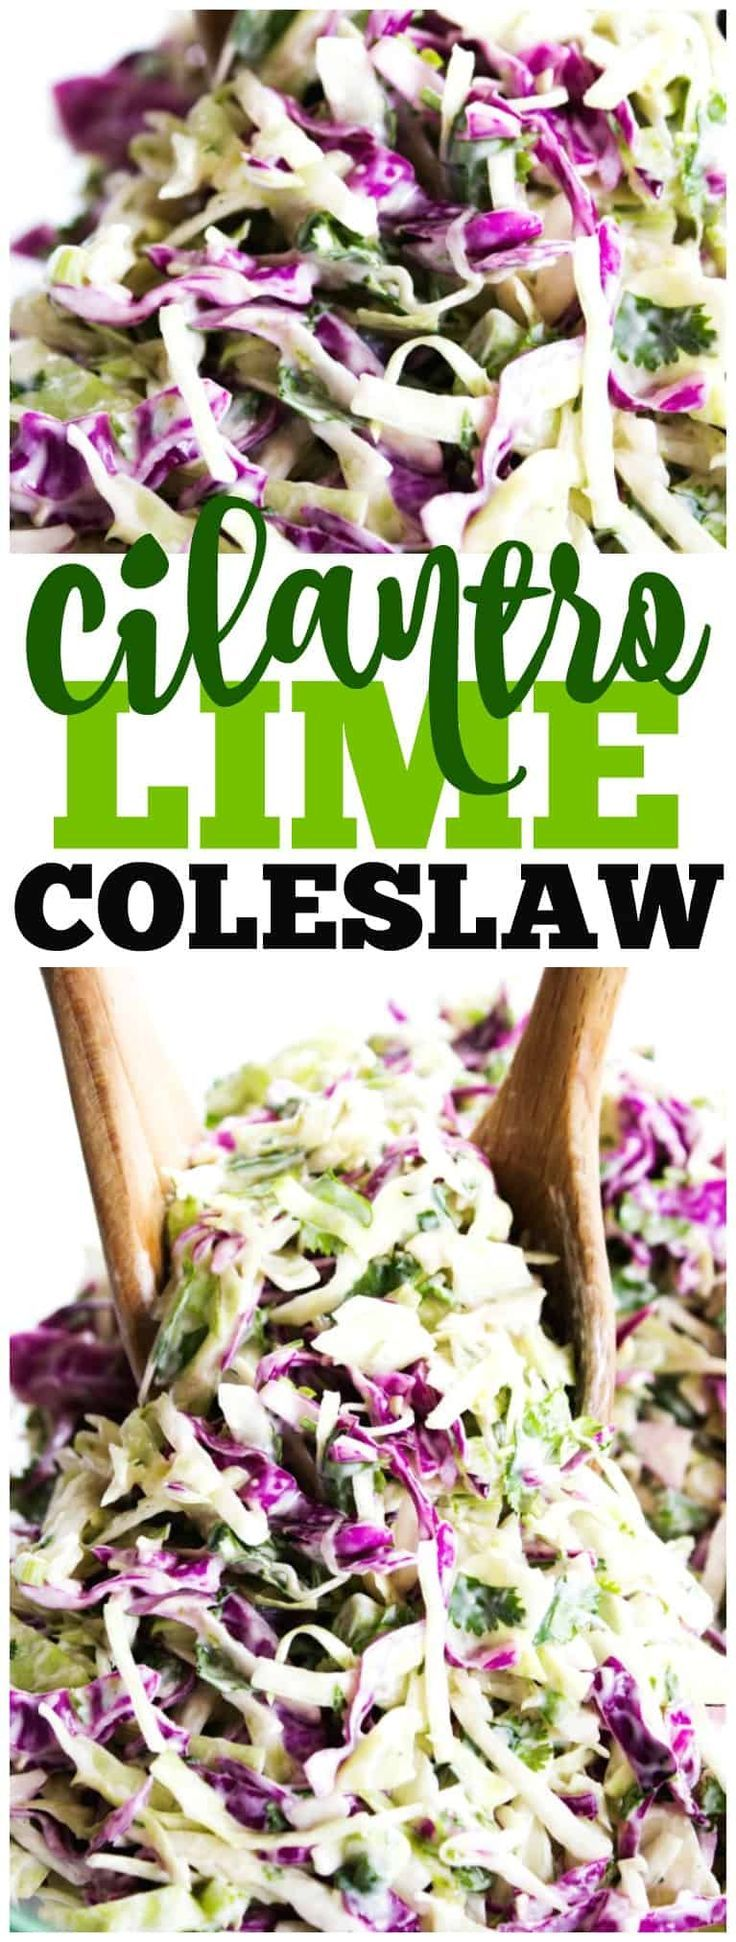 CILANTRO LIME COLESLAW deliciously light and refreshing, this twist on your traditional coleslaw is absolutely perfect for tacos, barbecues or as a salad. #coleslaw #recipe #sidedish #salad #cilantrolime